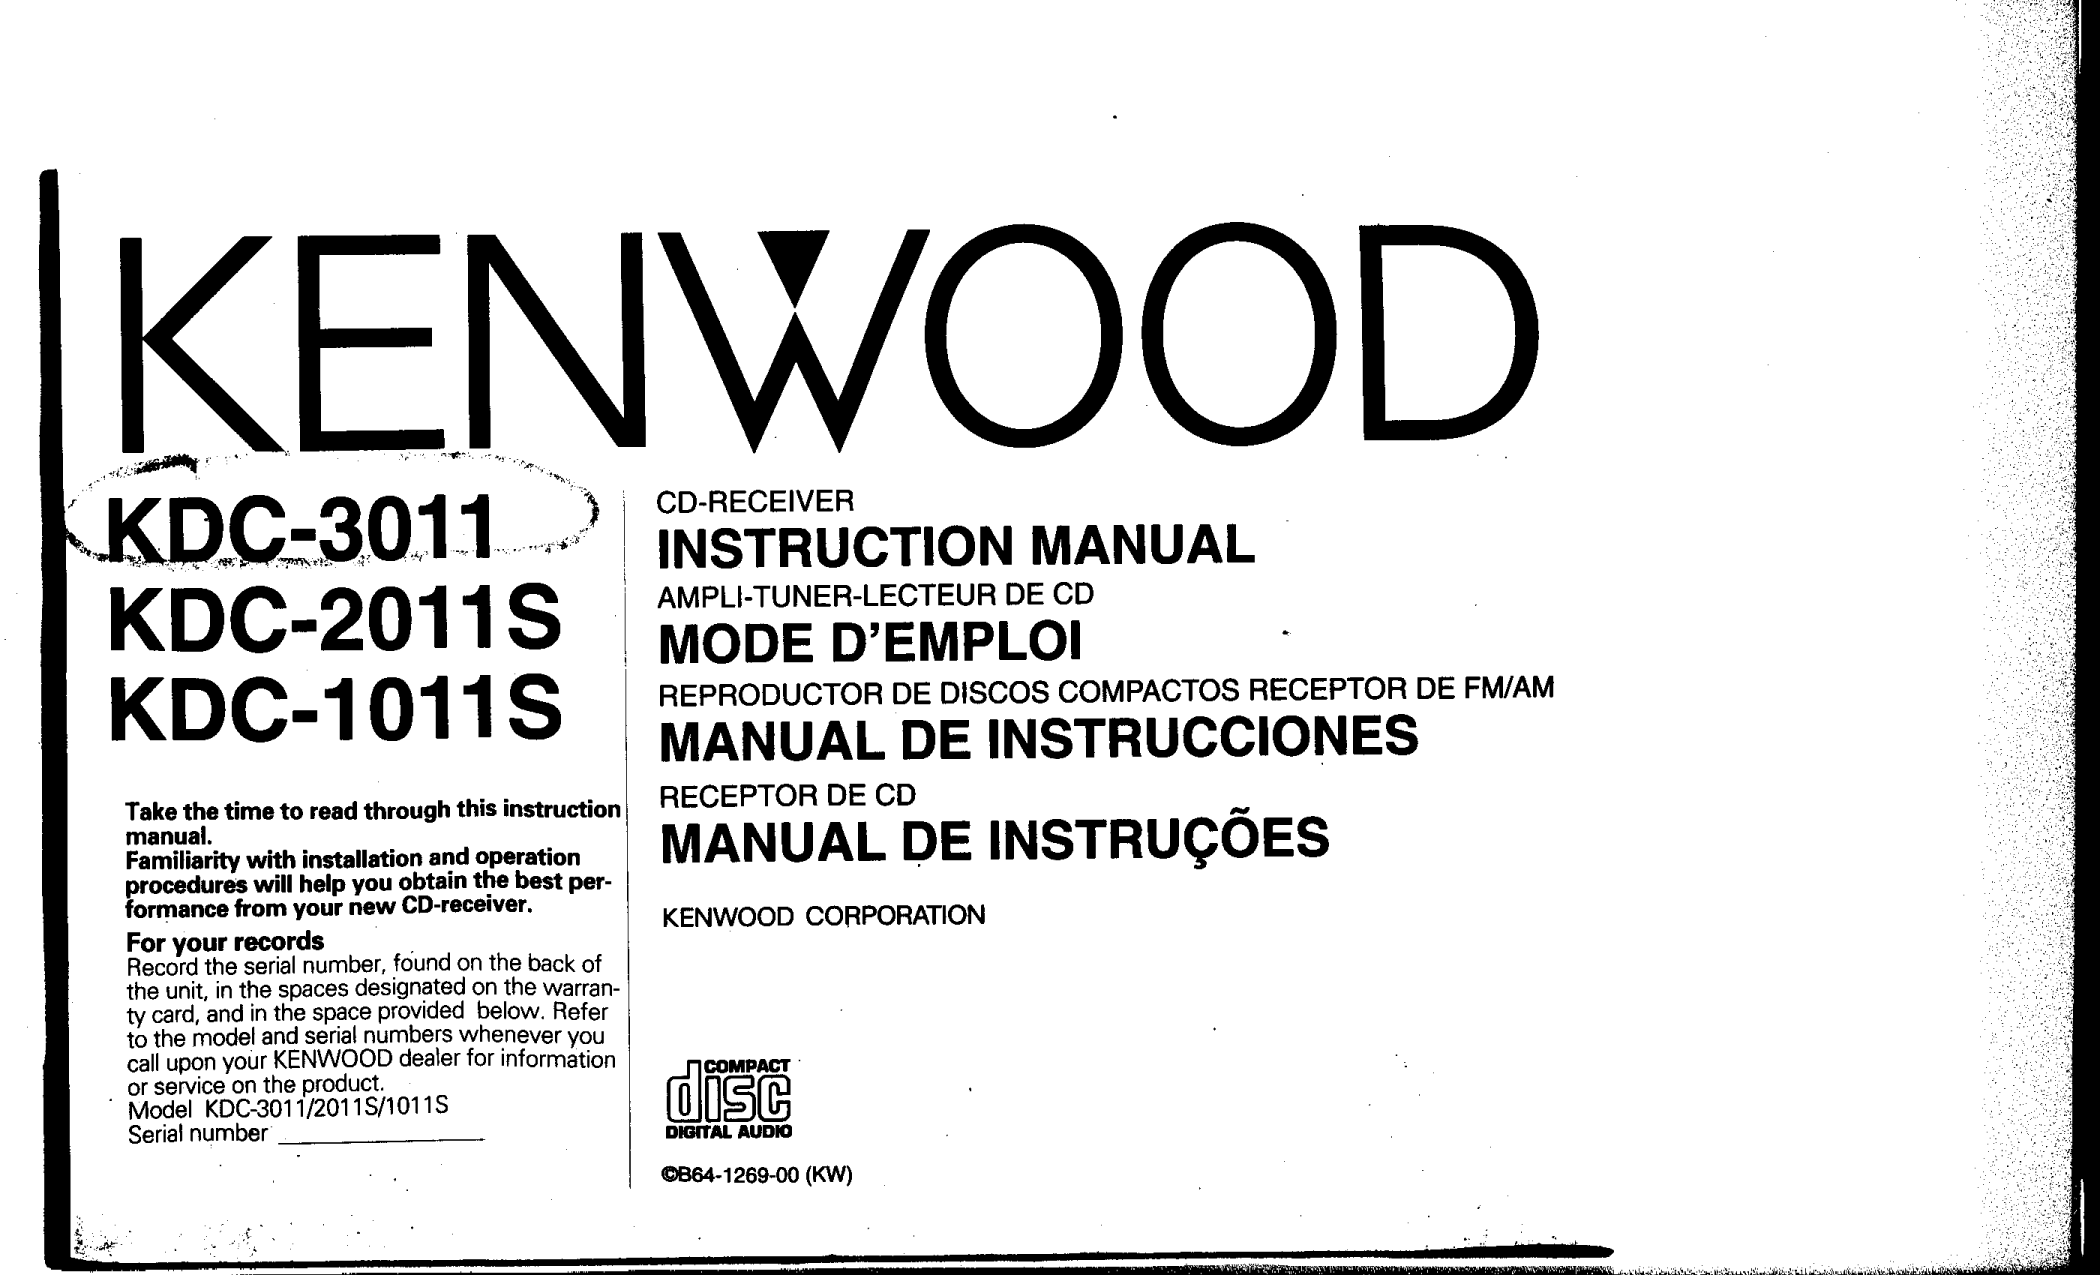 Download free pdf for Kenwood KDC-2011S Car Receiver manual